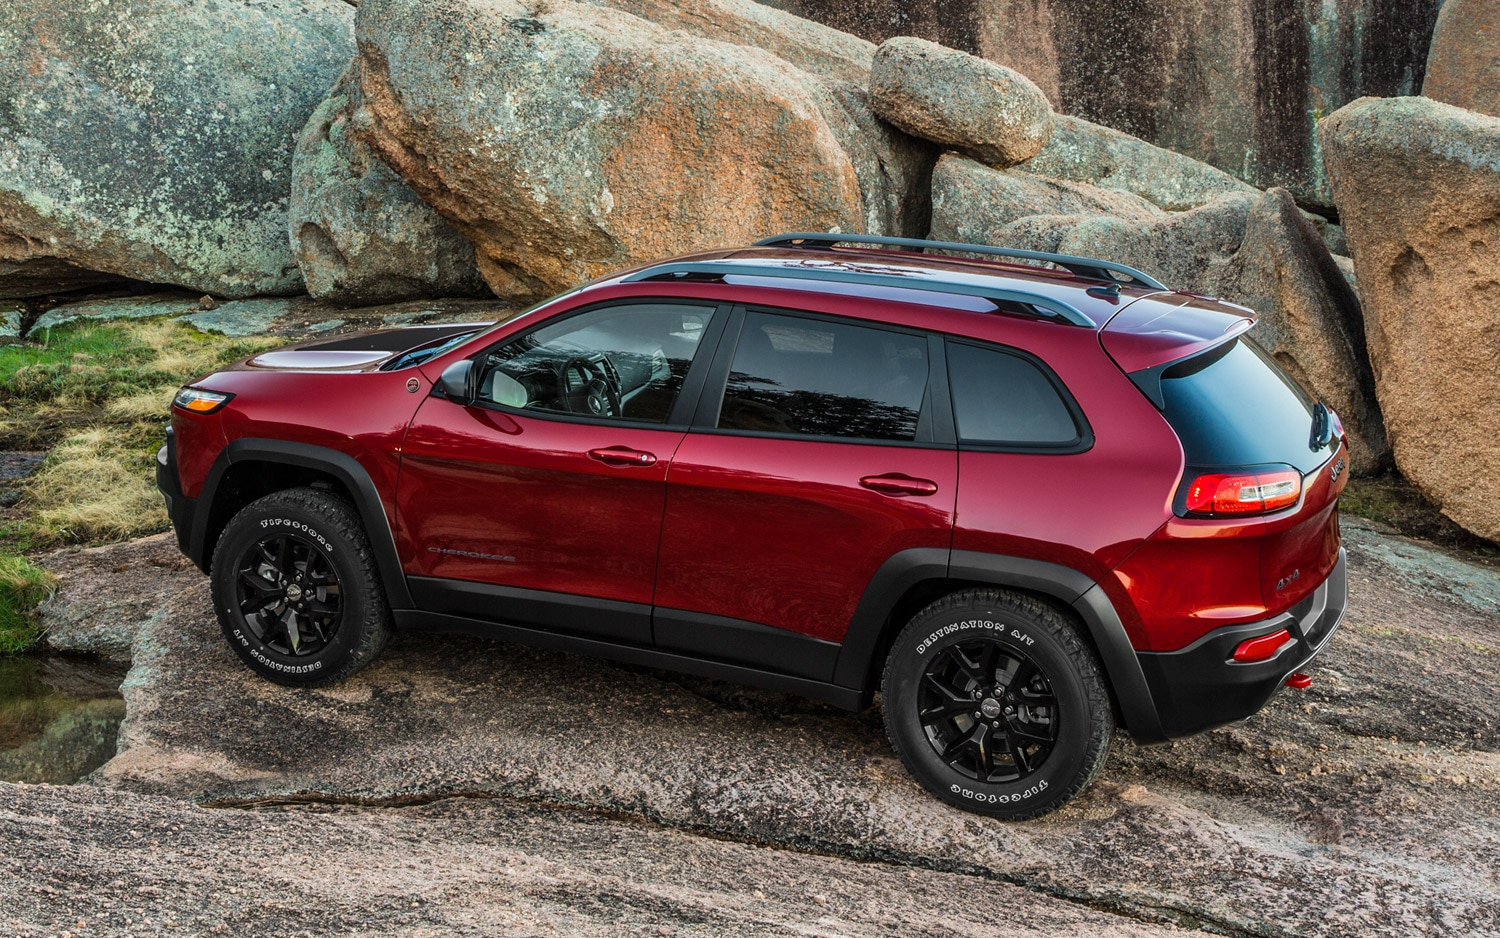 2014 Jeep Cherokee Trailhawk Rear Three Quarter1